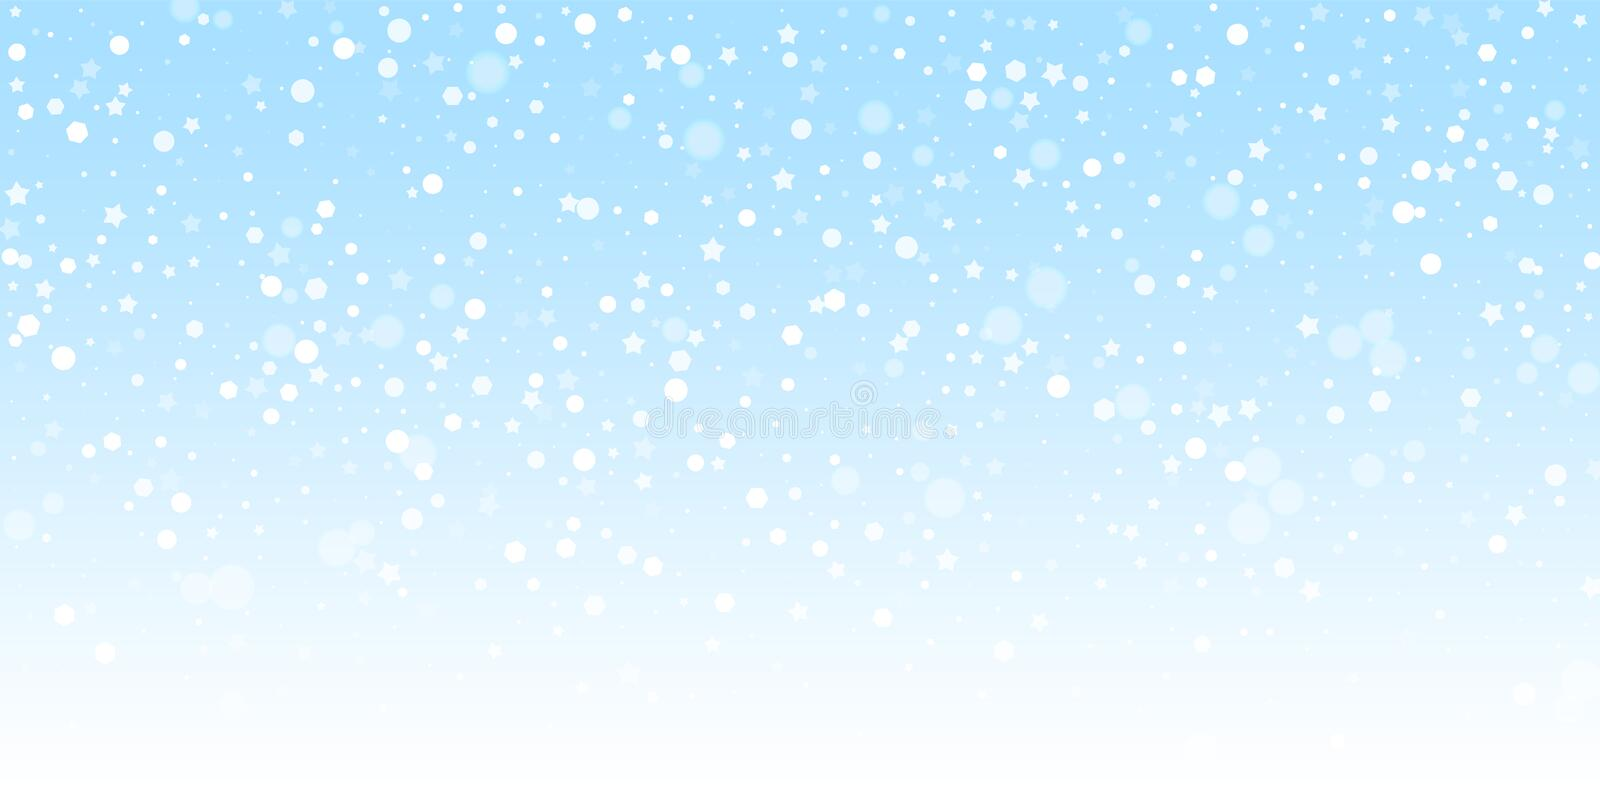 Magic stars random Christmas background. Subtle fl. Ying snow flakes and stars on winter sky background. Beauteous winter silver snowflake overlay template vector illustration